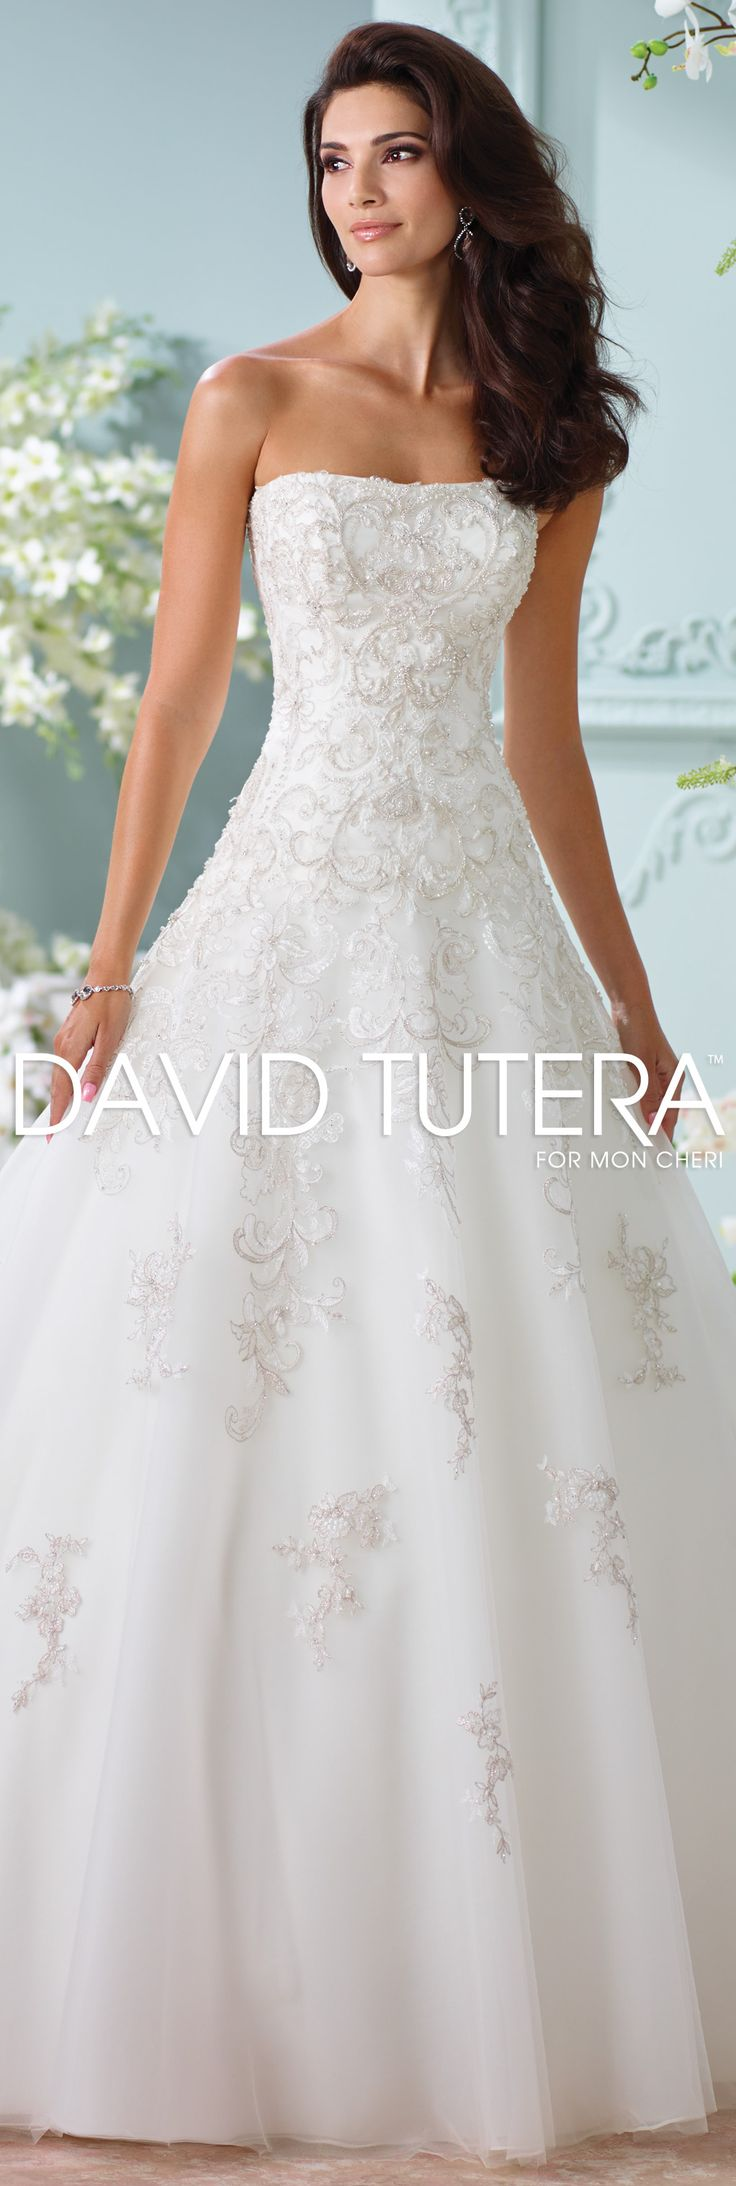 The David Tutera for Mon Cheri Spring 2016 Wedding Gown Collection - Style No. 116216 Sunniva #laceweddingdresses